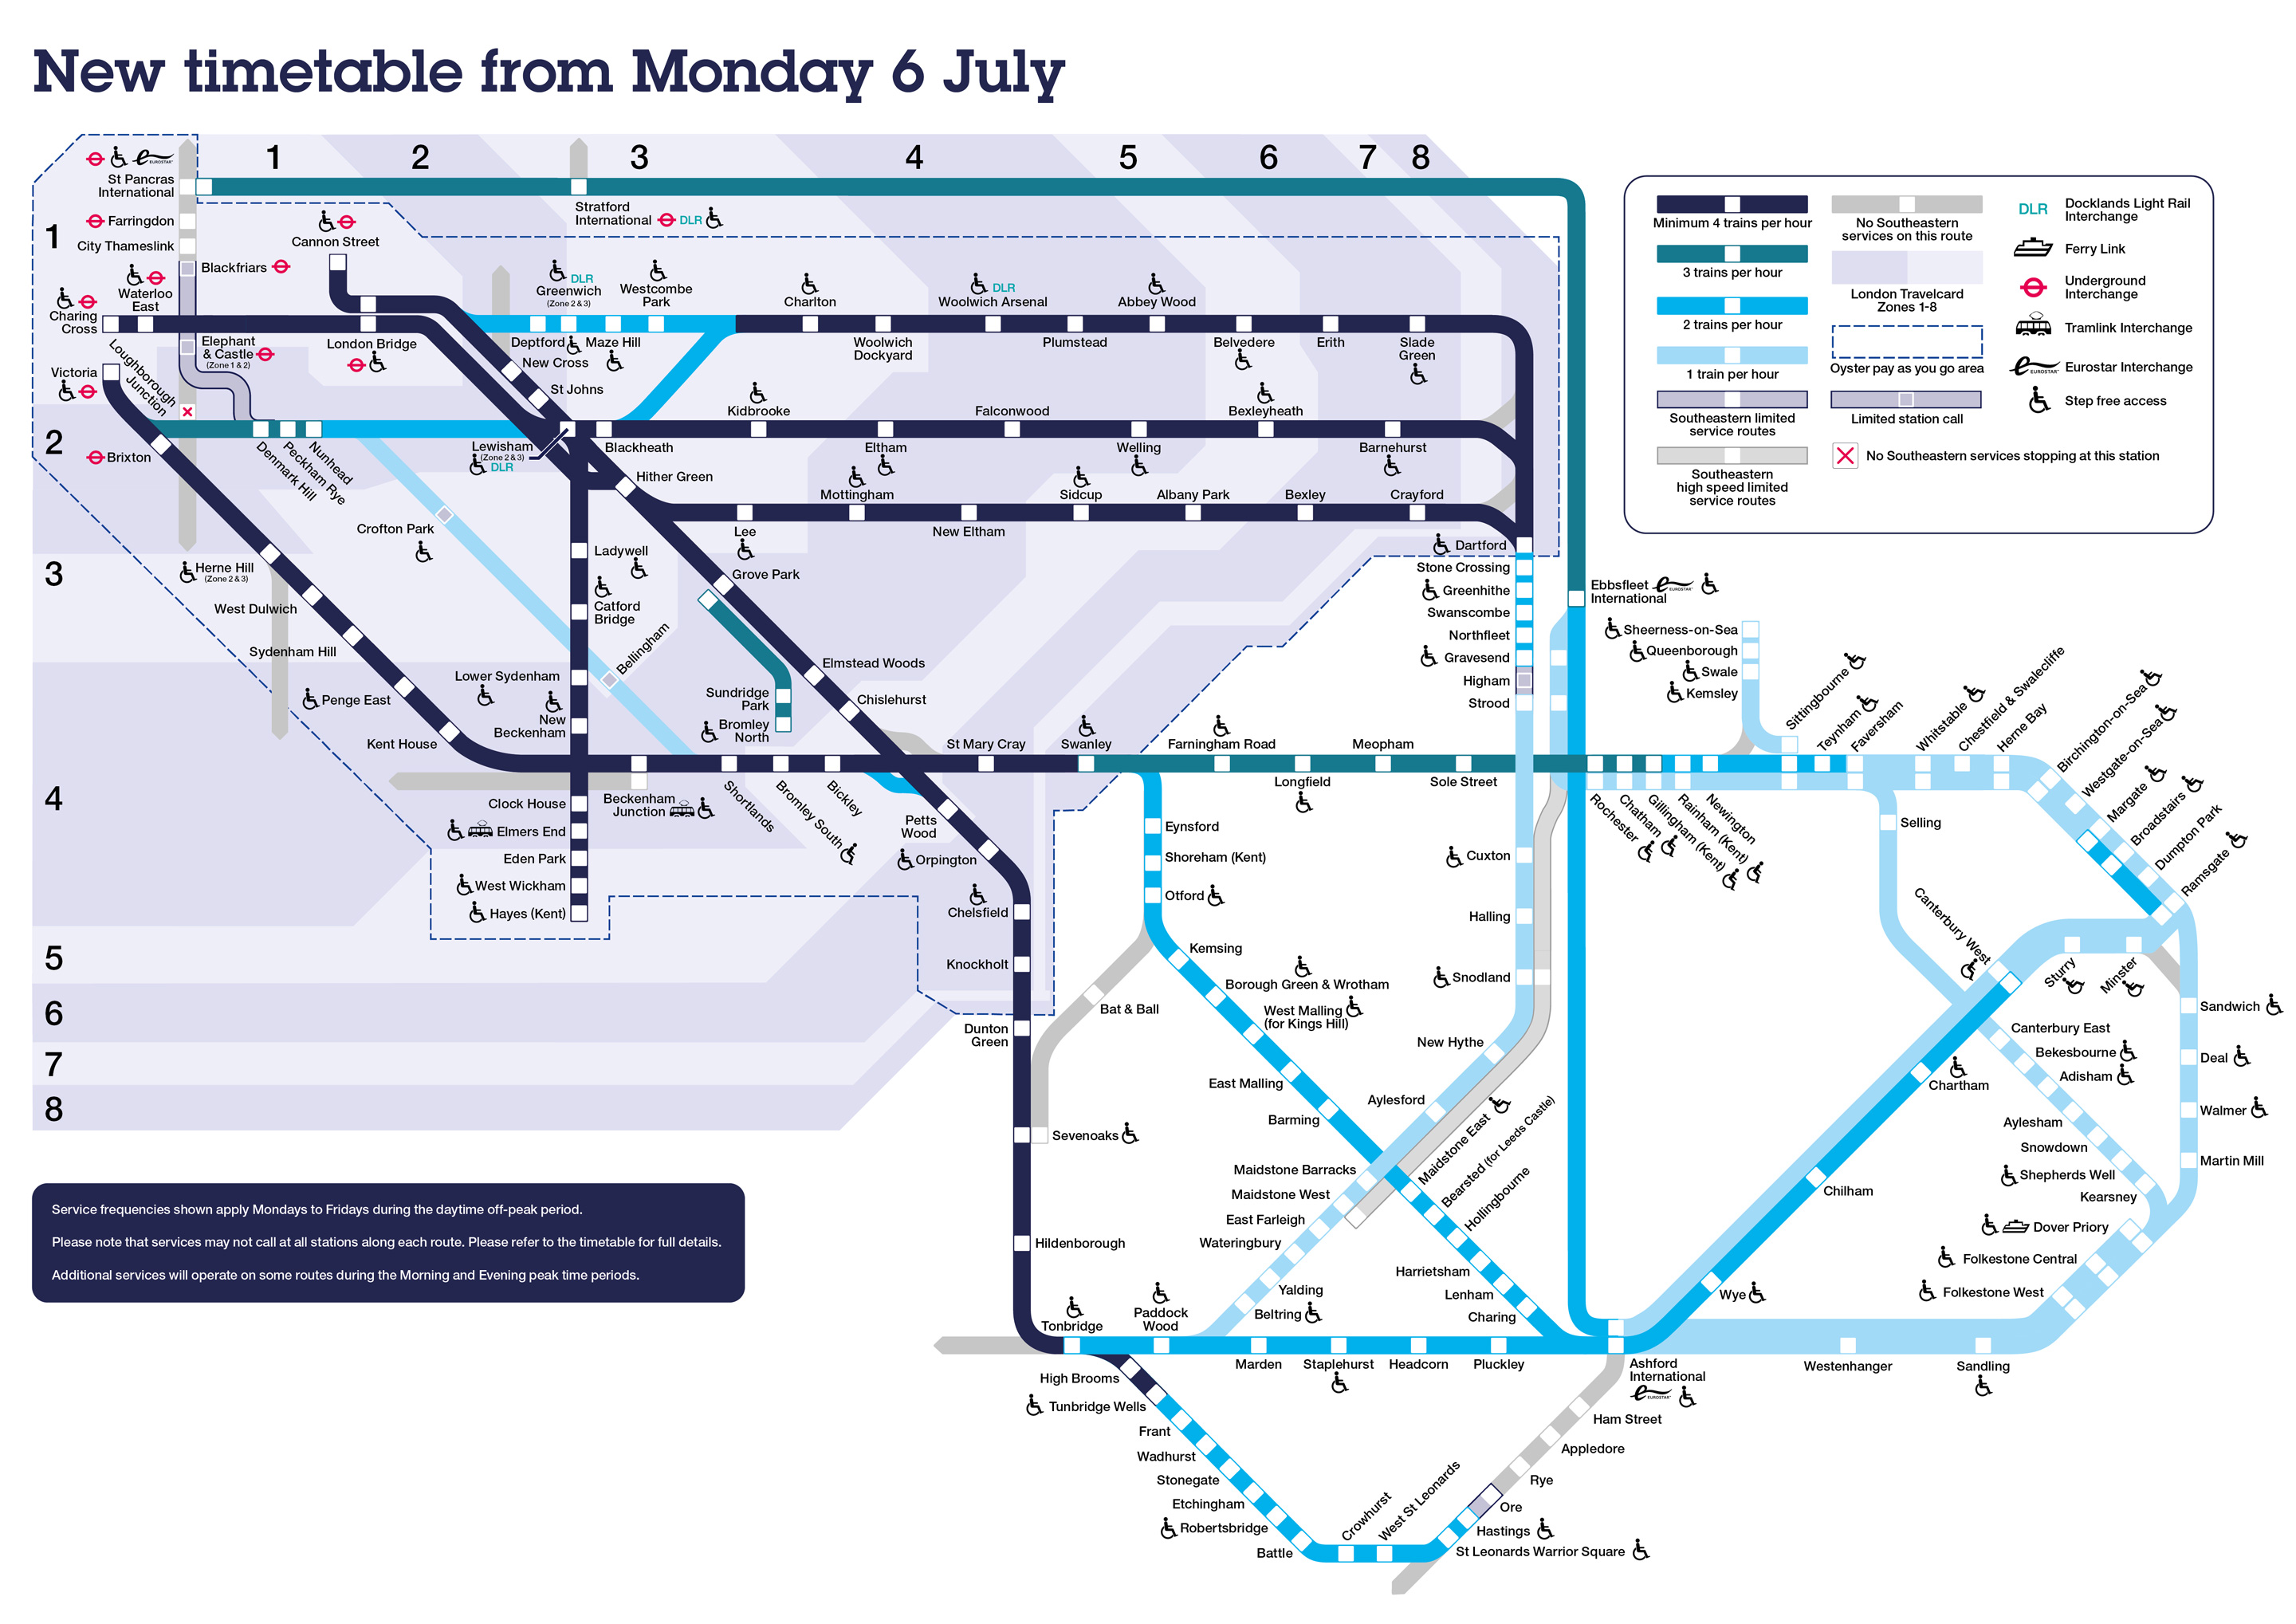 New timetable from Monday 6 July